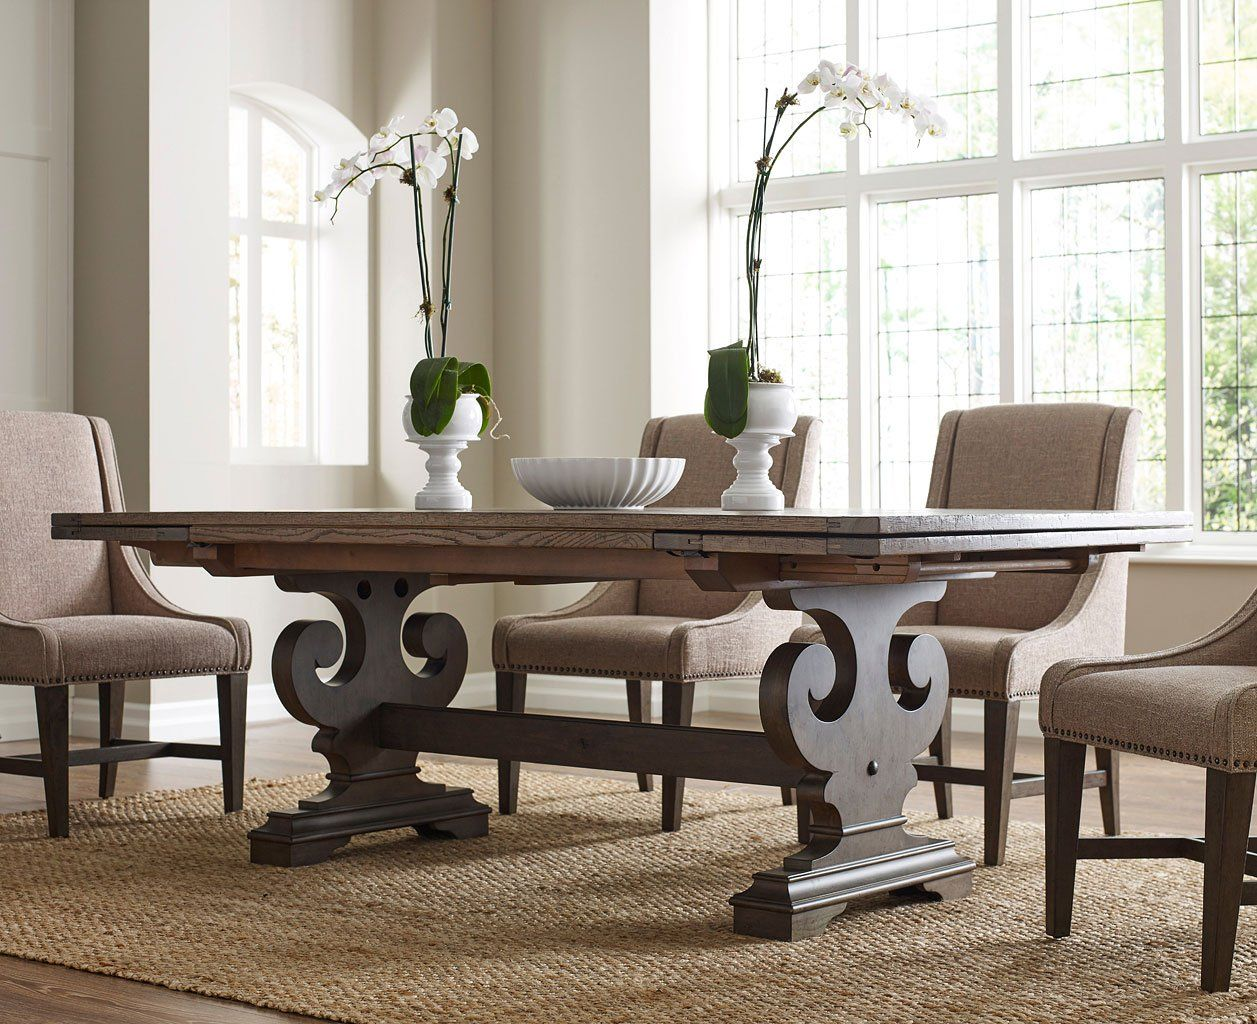 Greyson Crawford Refractory Dining Table In 2020 Beautiful